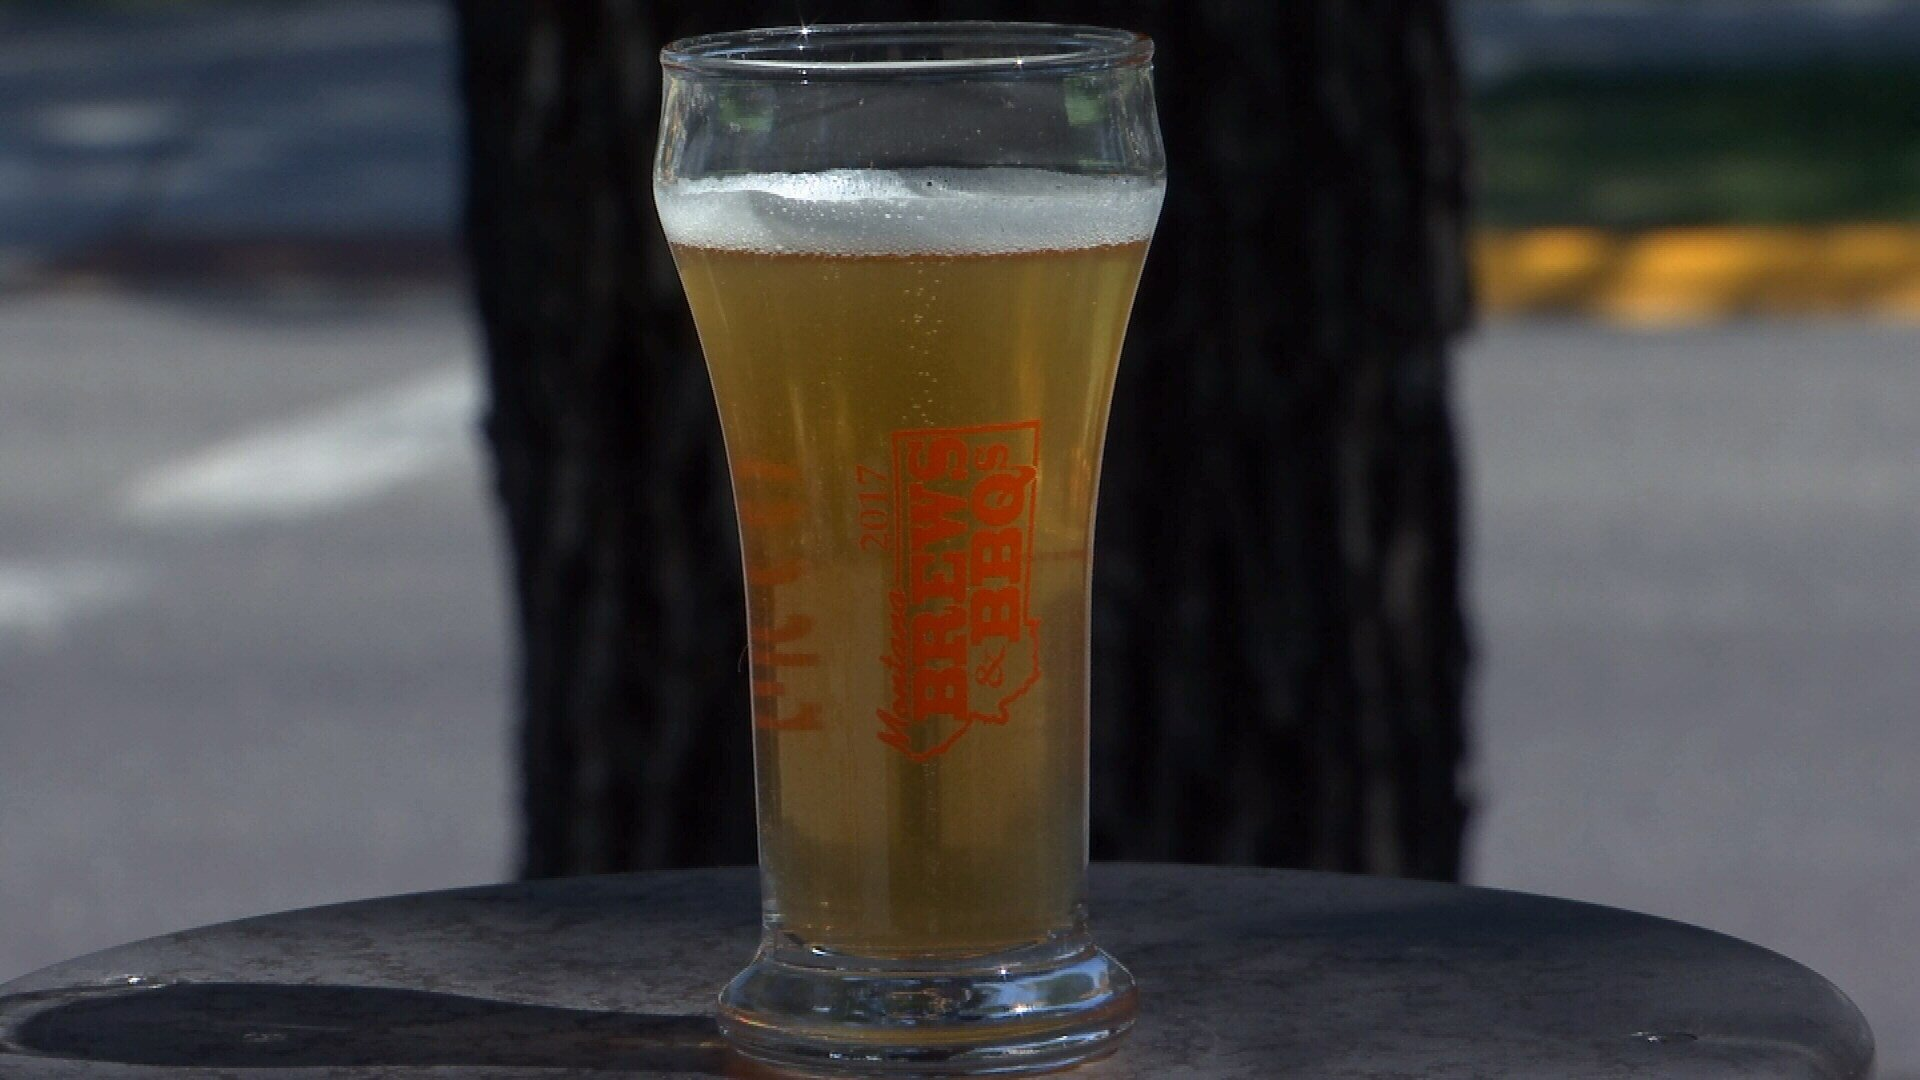 All beers will be served in a souvenir glass. (MTN News Photo)